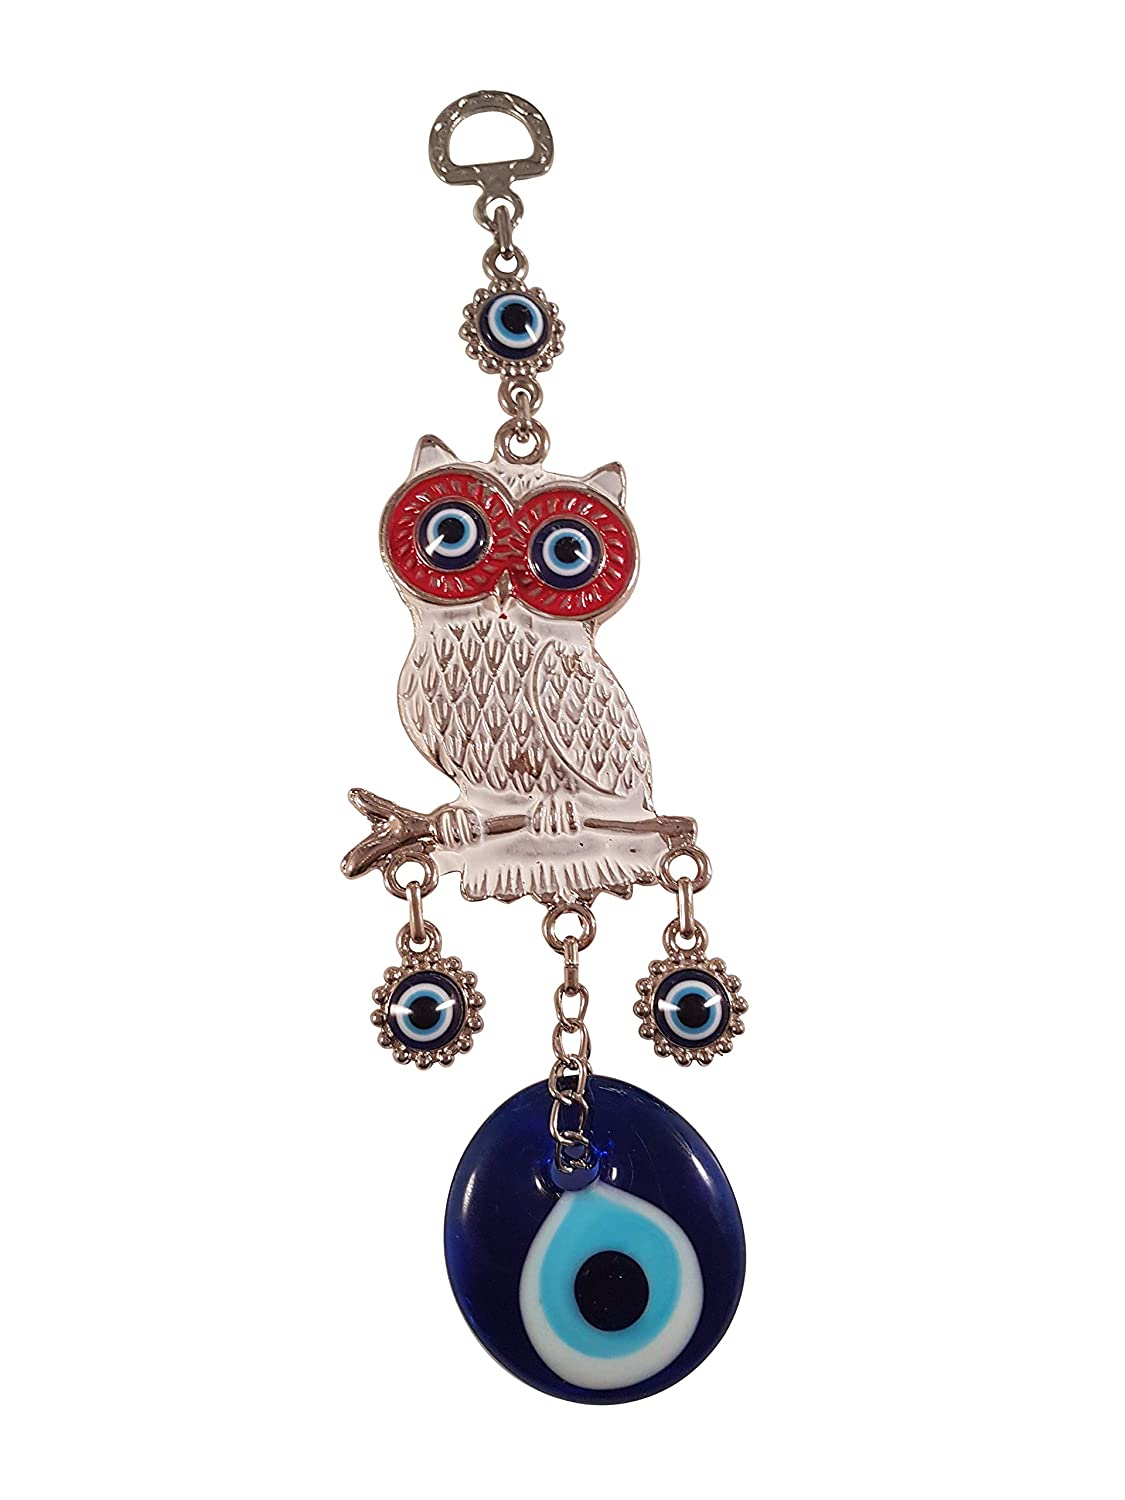 Metal Home Decor Turkish Amulet Bead Global Turkish Glass Blue Evil Eye Wall Hanging Owl Ornament Protection and Good Luck Charm Gift Red